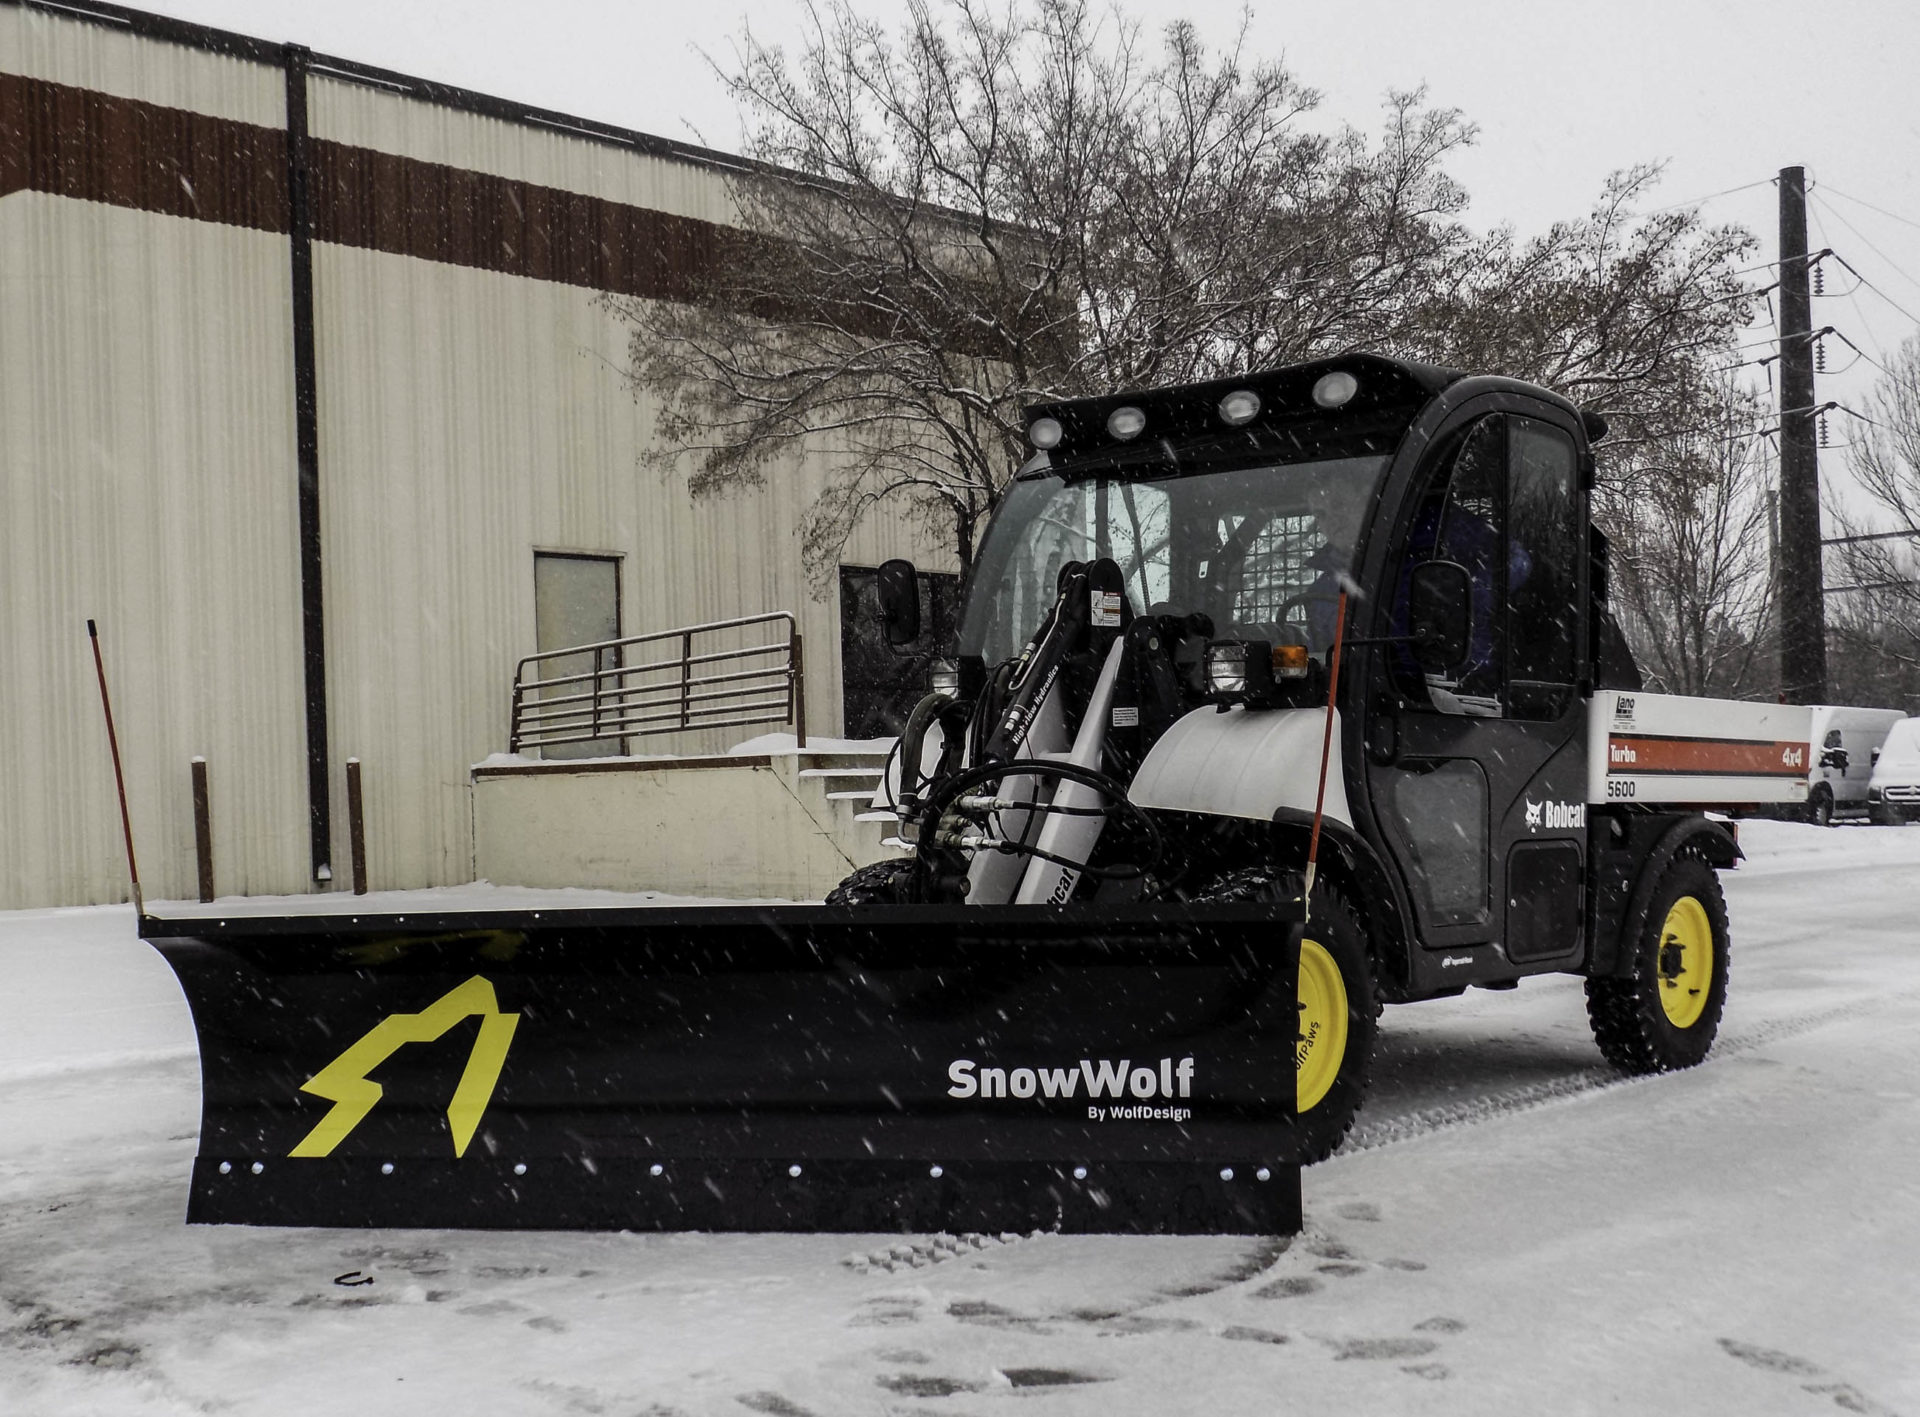 Snowwolf 174 Introduces All New Redesigned Flexplow